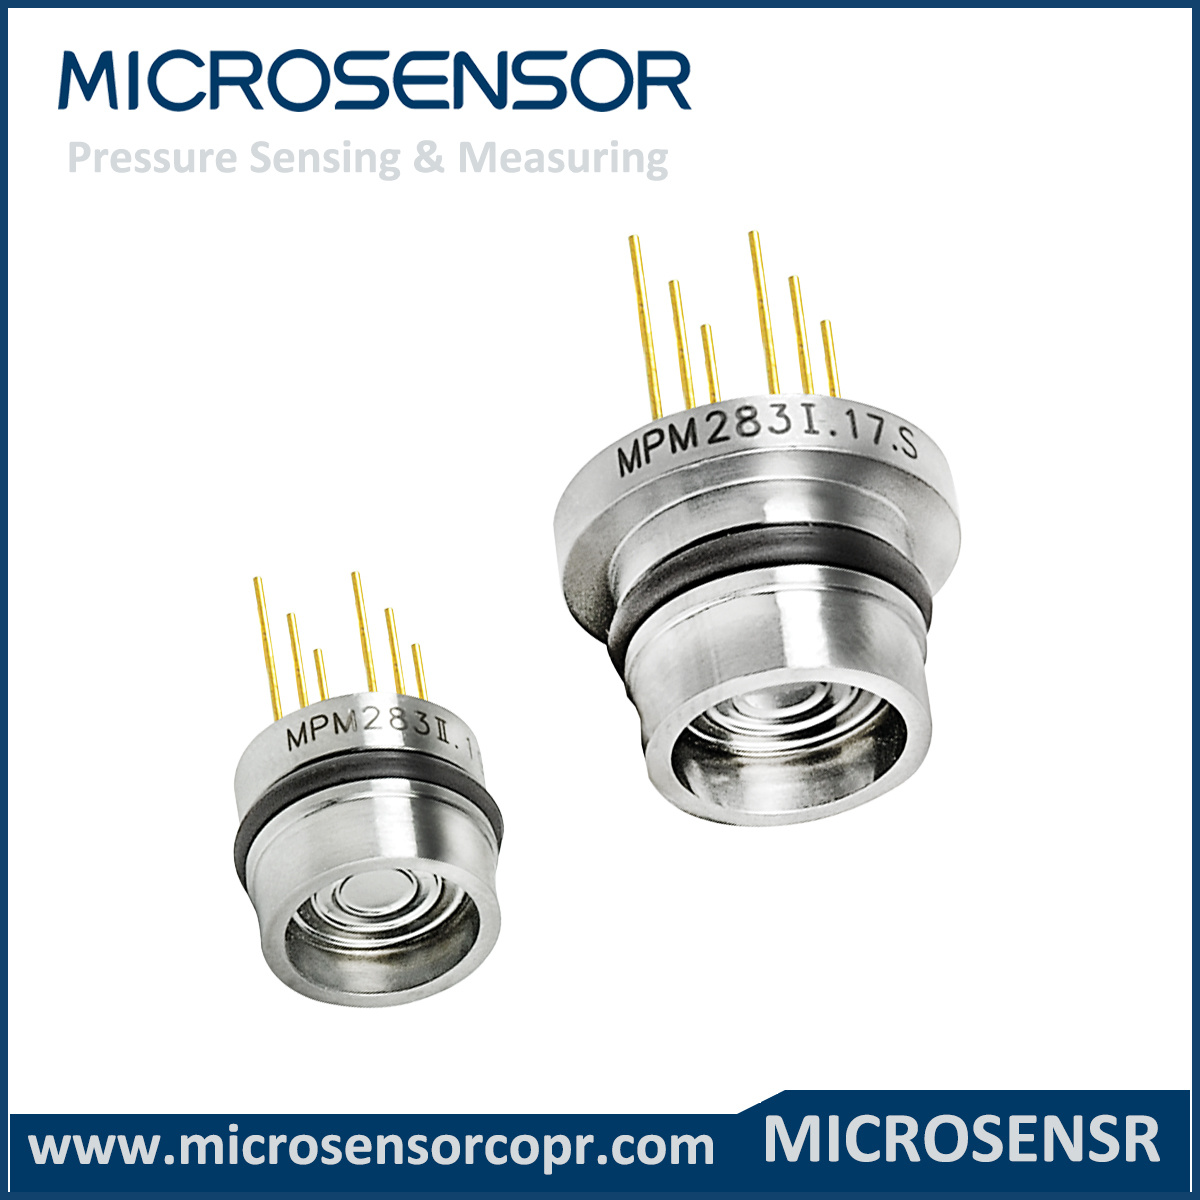 Isolated OEM Pressure Sensor Mpm283